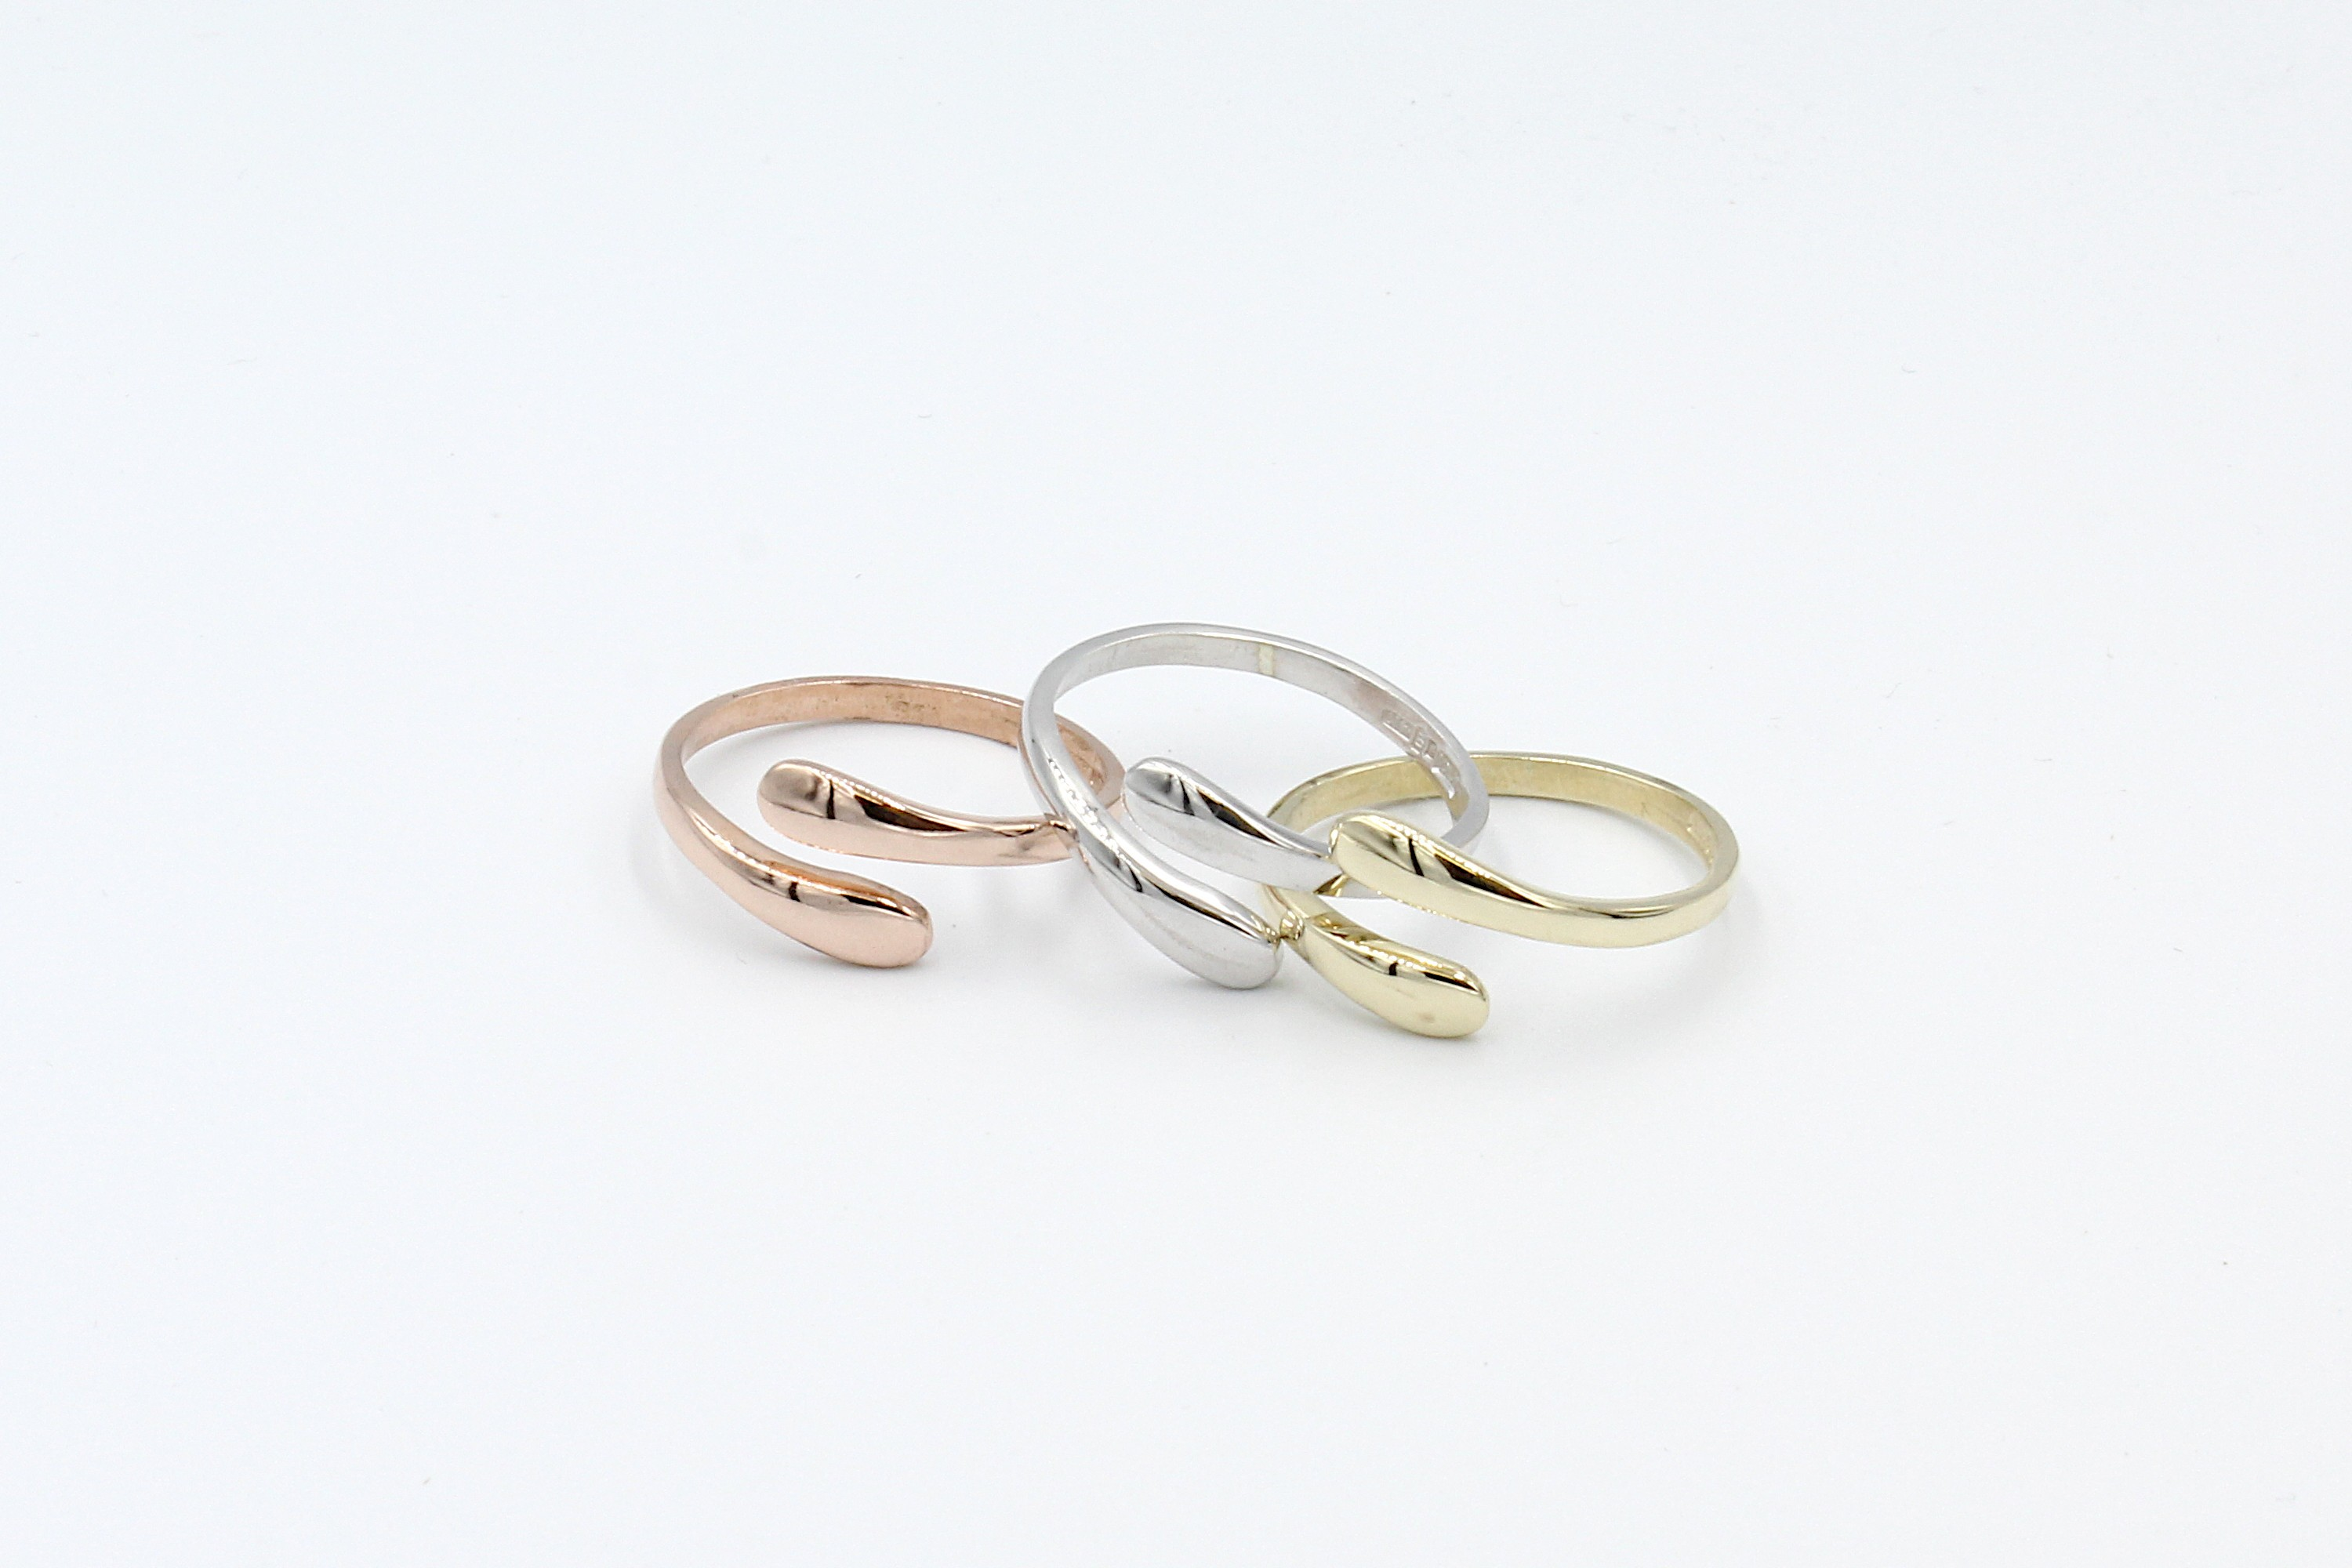 white gold, rose gold, and yellow goldthumb rings on a white background